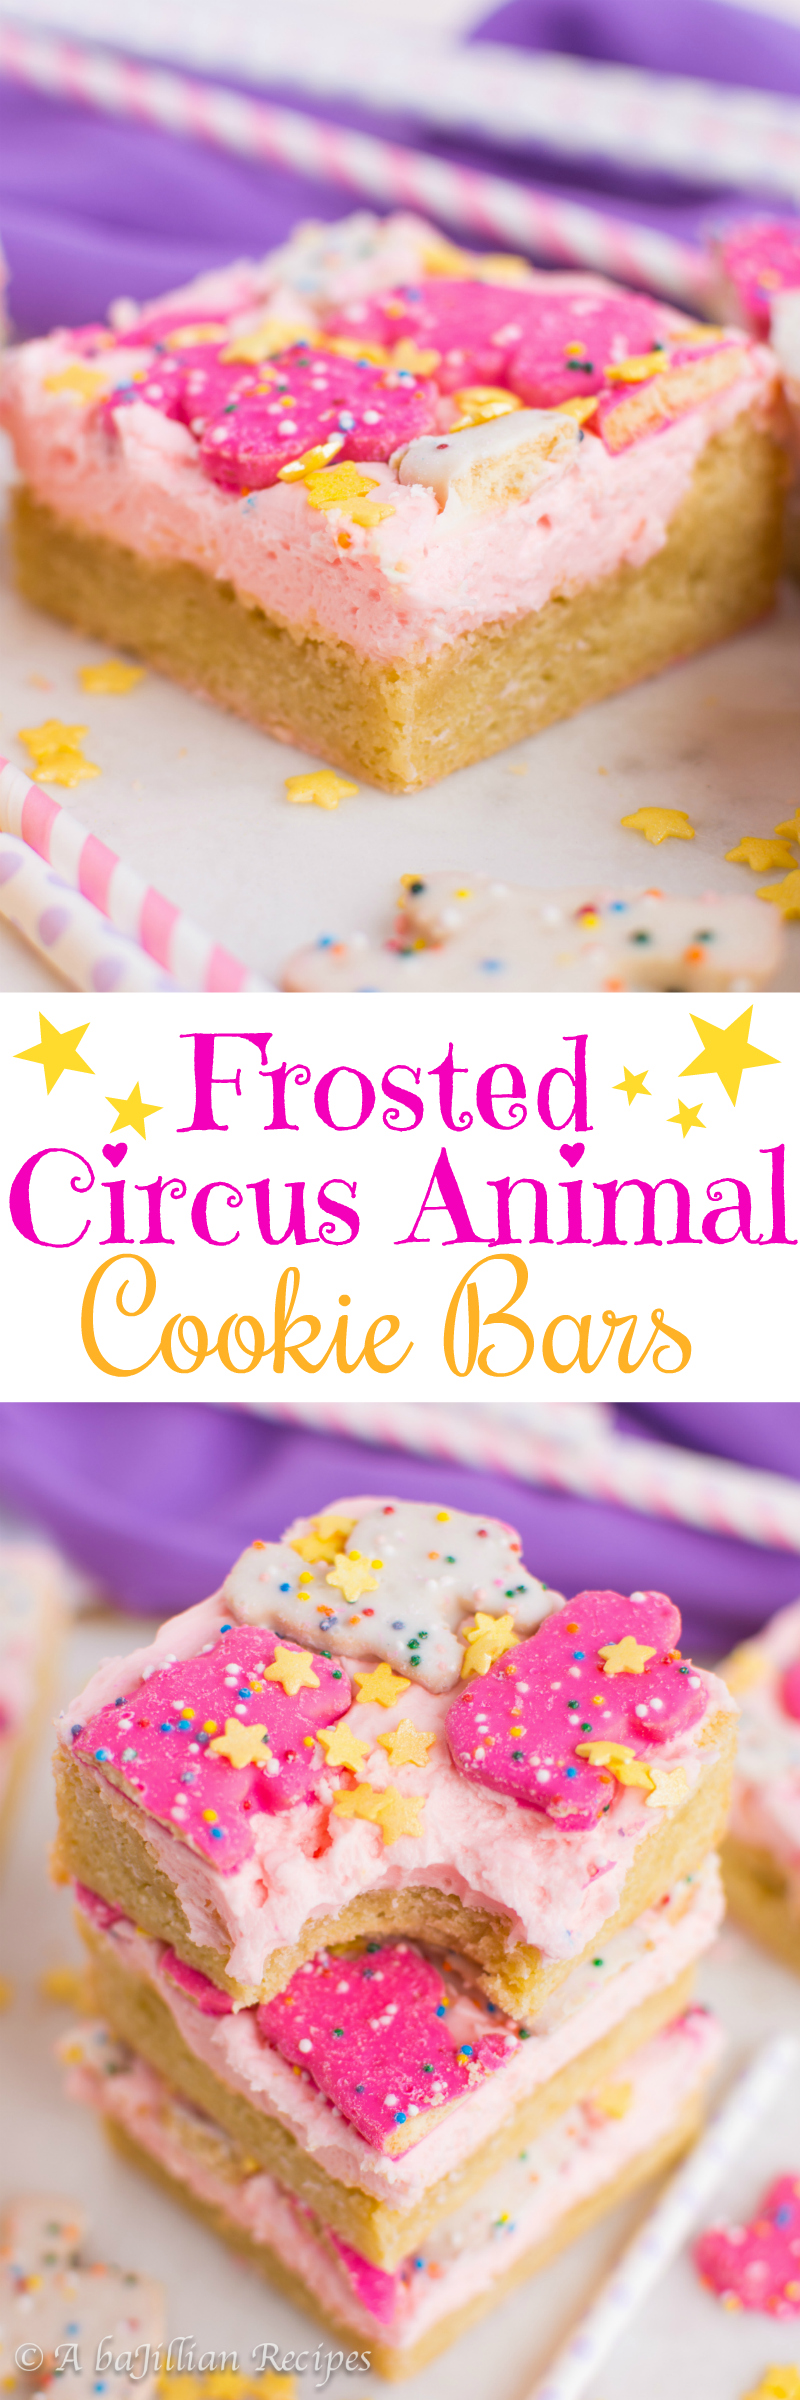 Frosted Circus Animal Cookie Bars (collage)